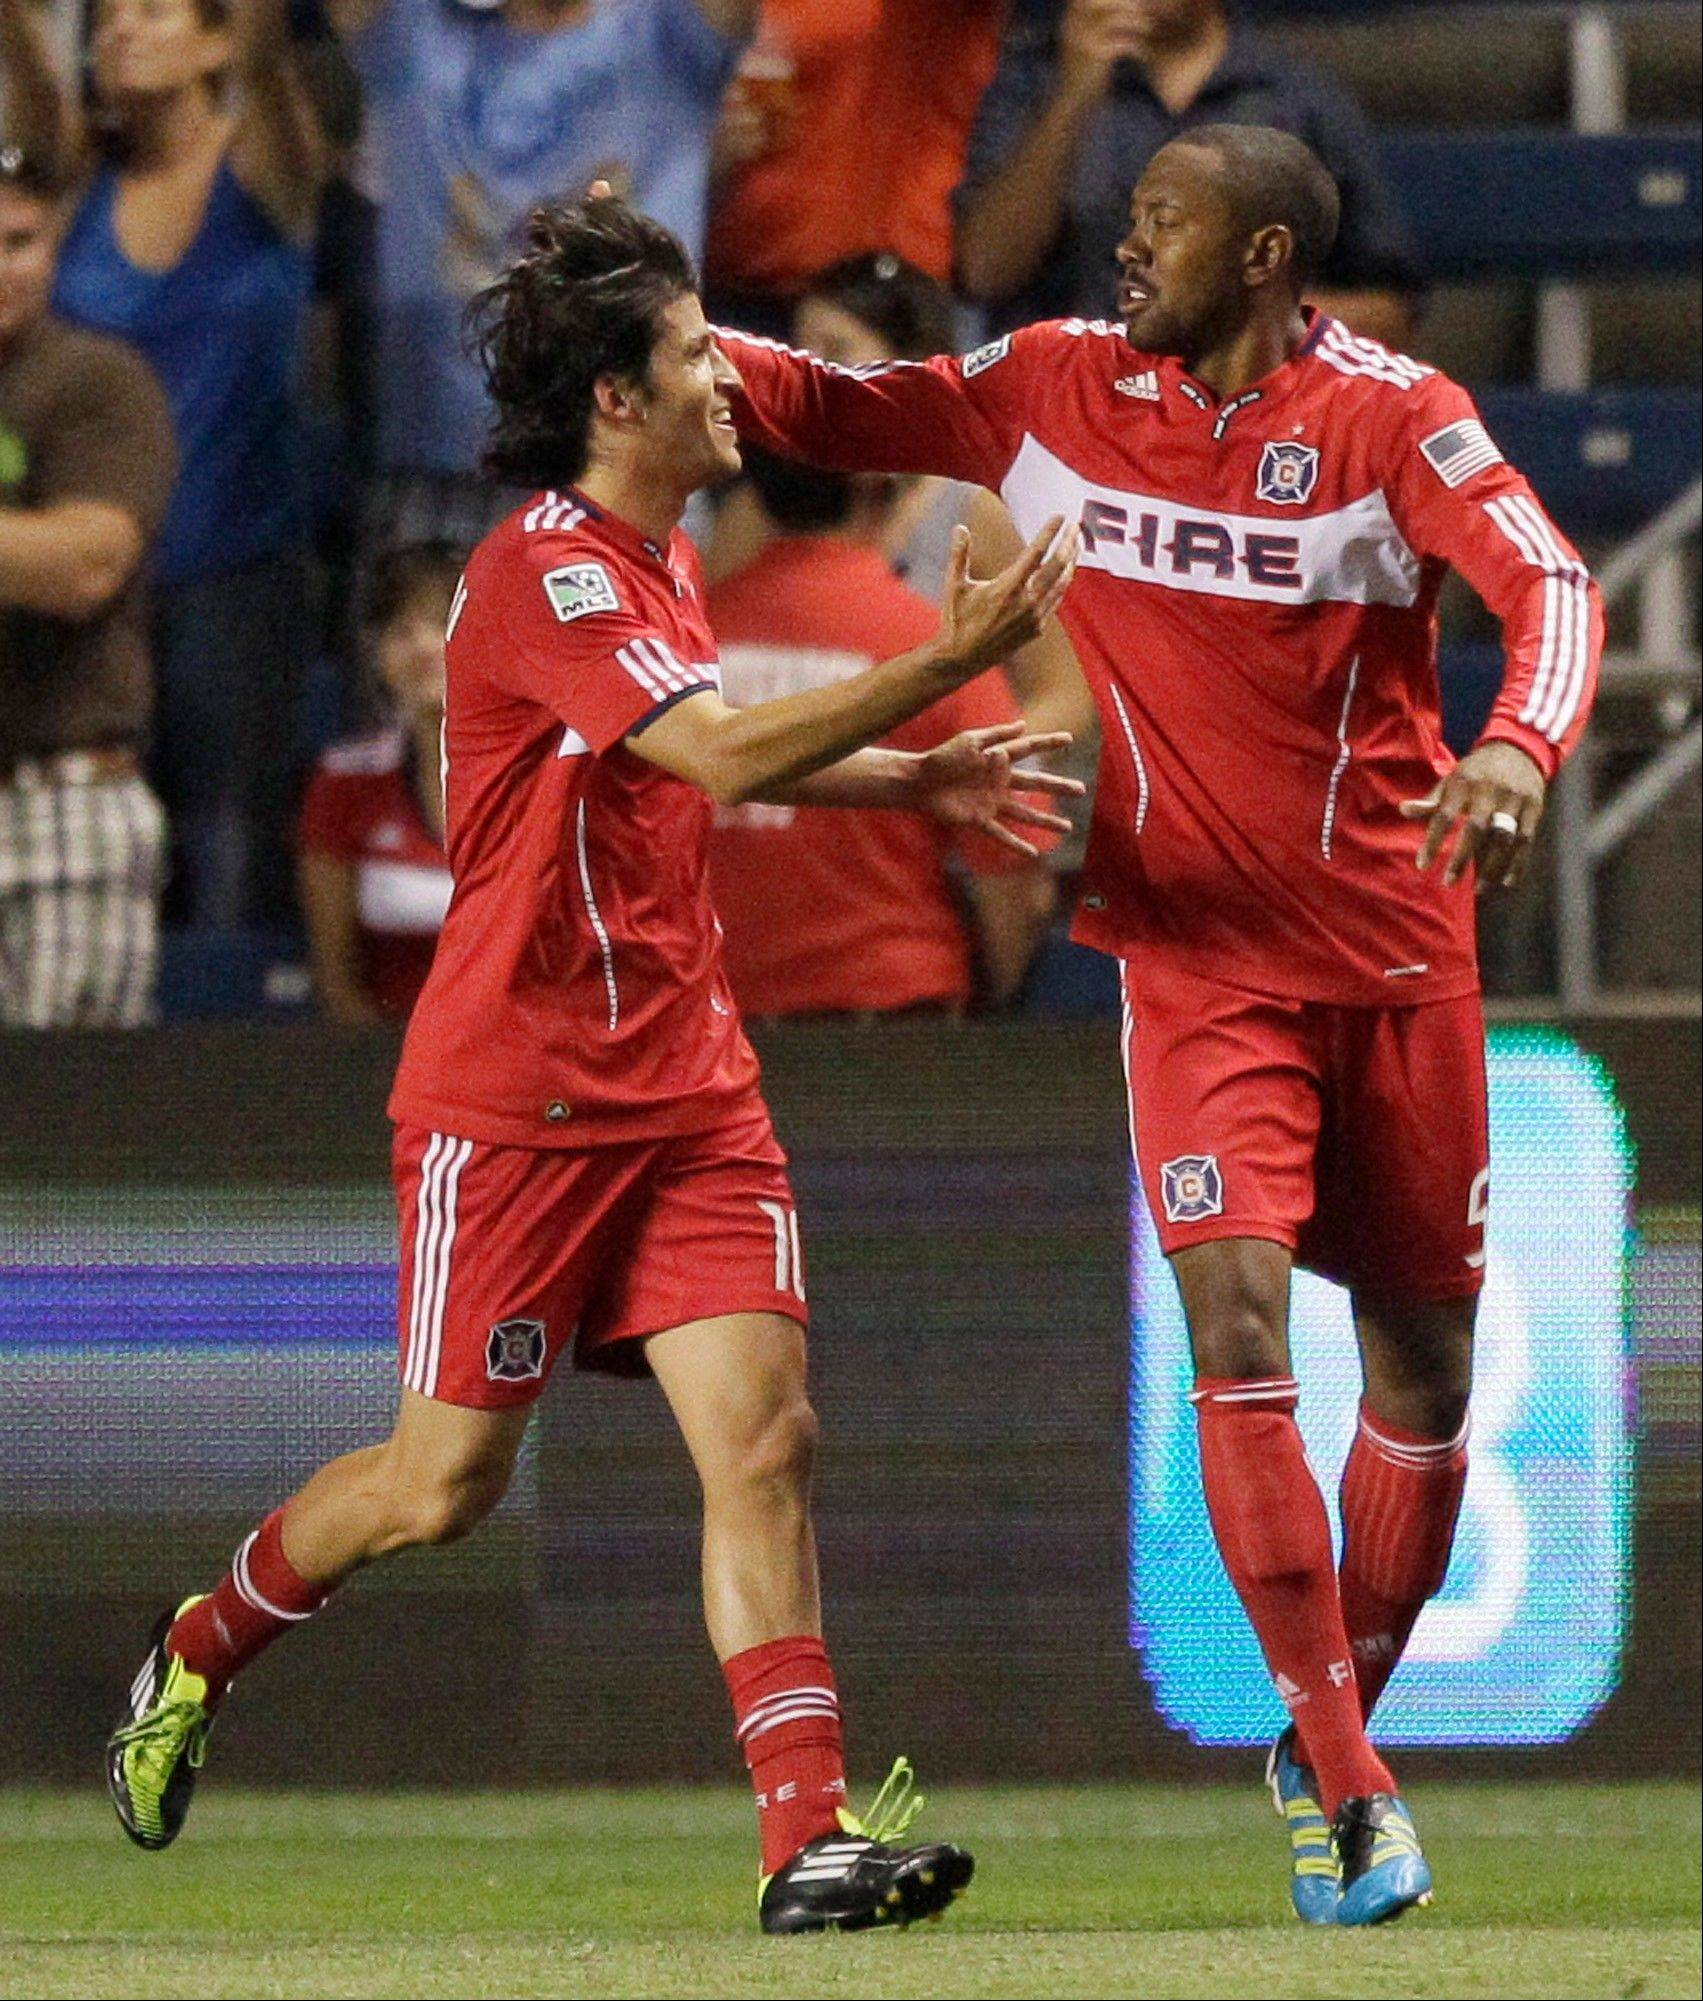 The Fire's Cory Gibbs, right, celebrates with Sebastian Grazzini after scoring a goal during the first half against the Colorado Rapids on Saturday. Grazzini has been one of the Fire's plesant surprises this season although he arrived too late to make much of a difference.